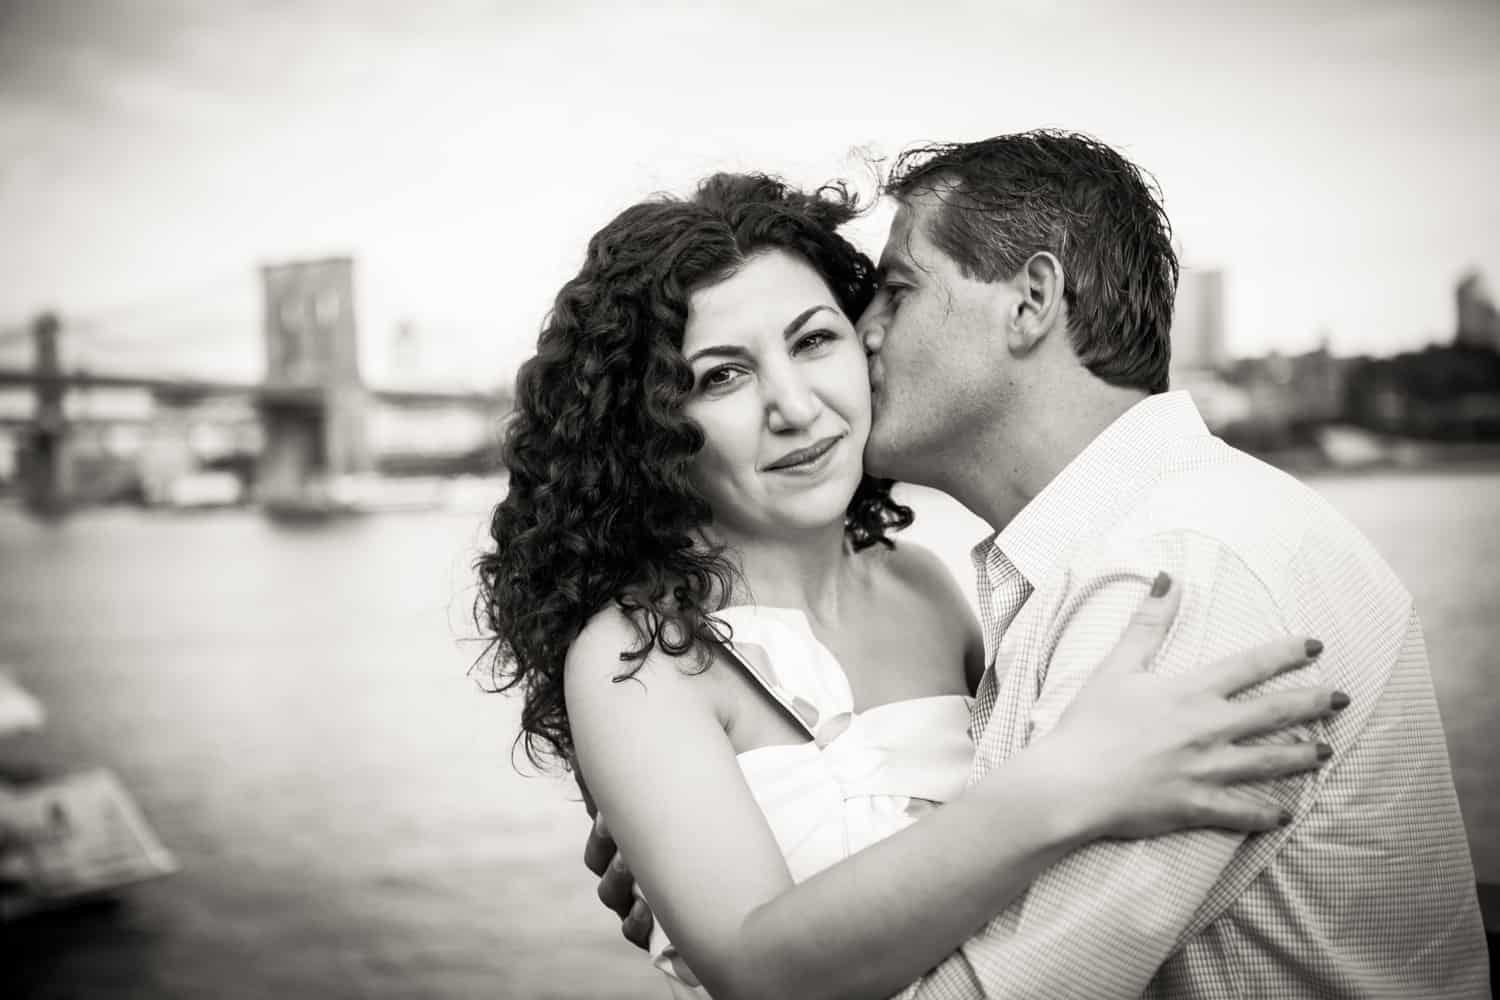 Black and white photo of man kissing woman on cheek by waterfront